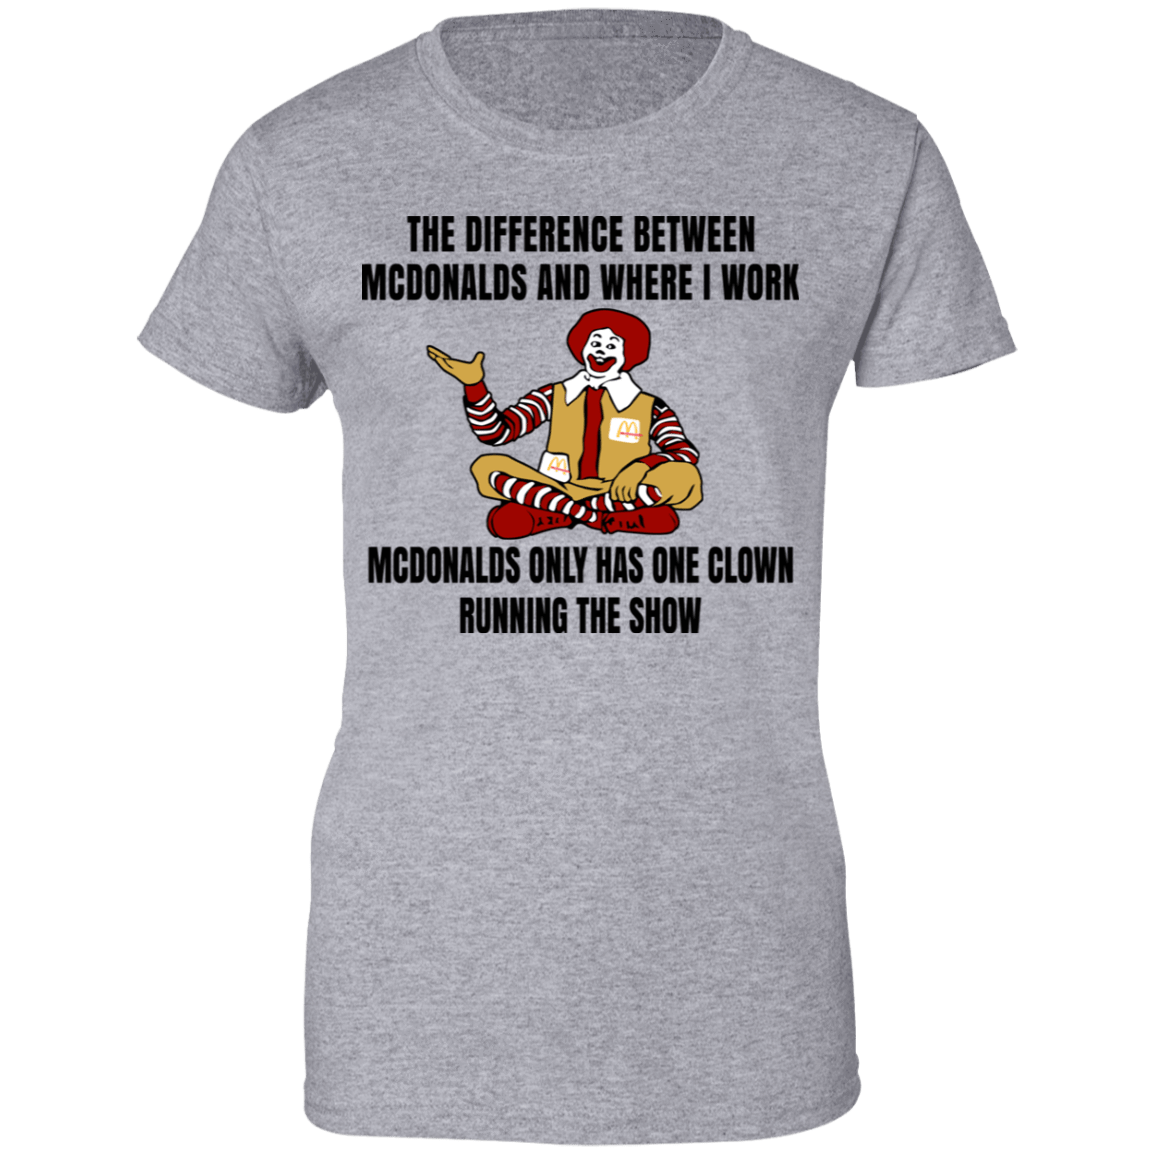 The Difference Between McDonalds And Where I Work McDonalds Only Has One Clown Running The Show T-Shirts, Hoodies, Tank 939-9265-79763382-44821 - Tee Ript